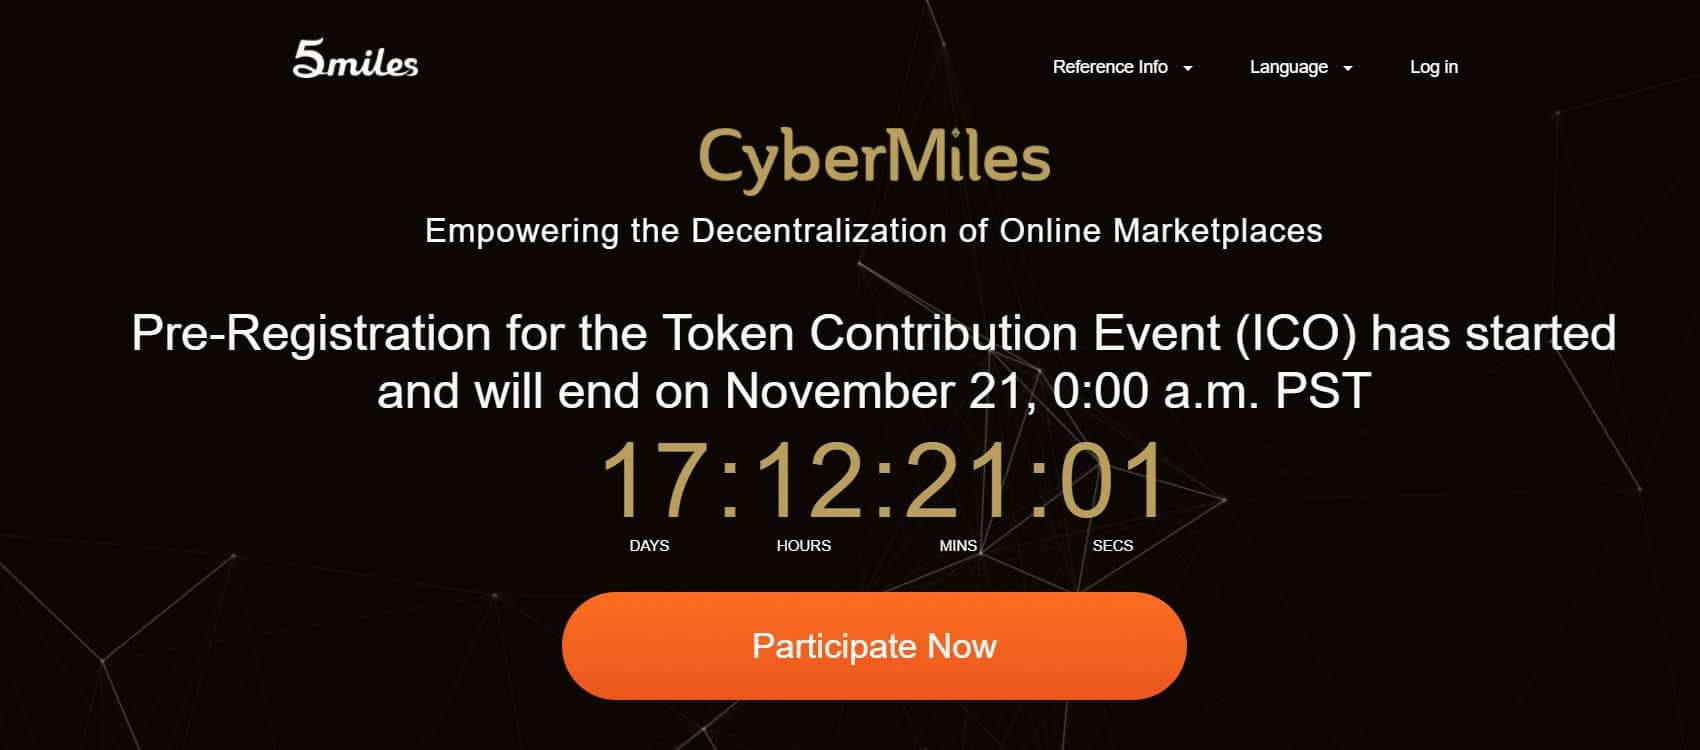 cybermiles twitter search